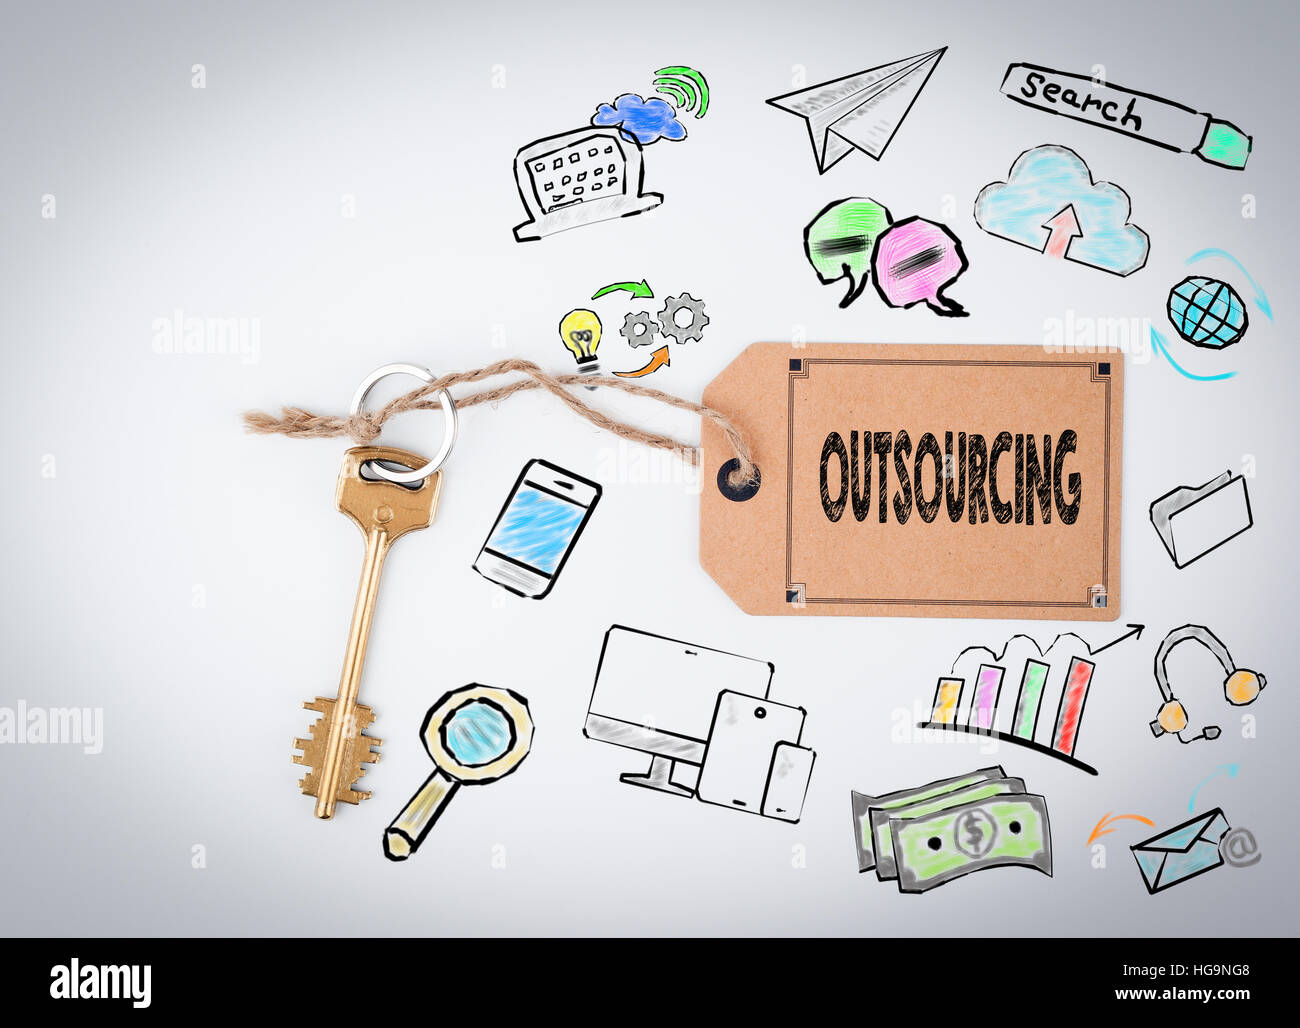 Outsourcing. Key and a note on a white background - Stock Image